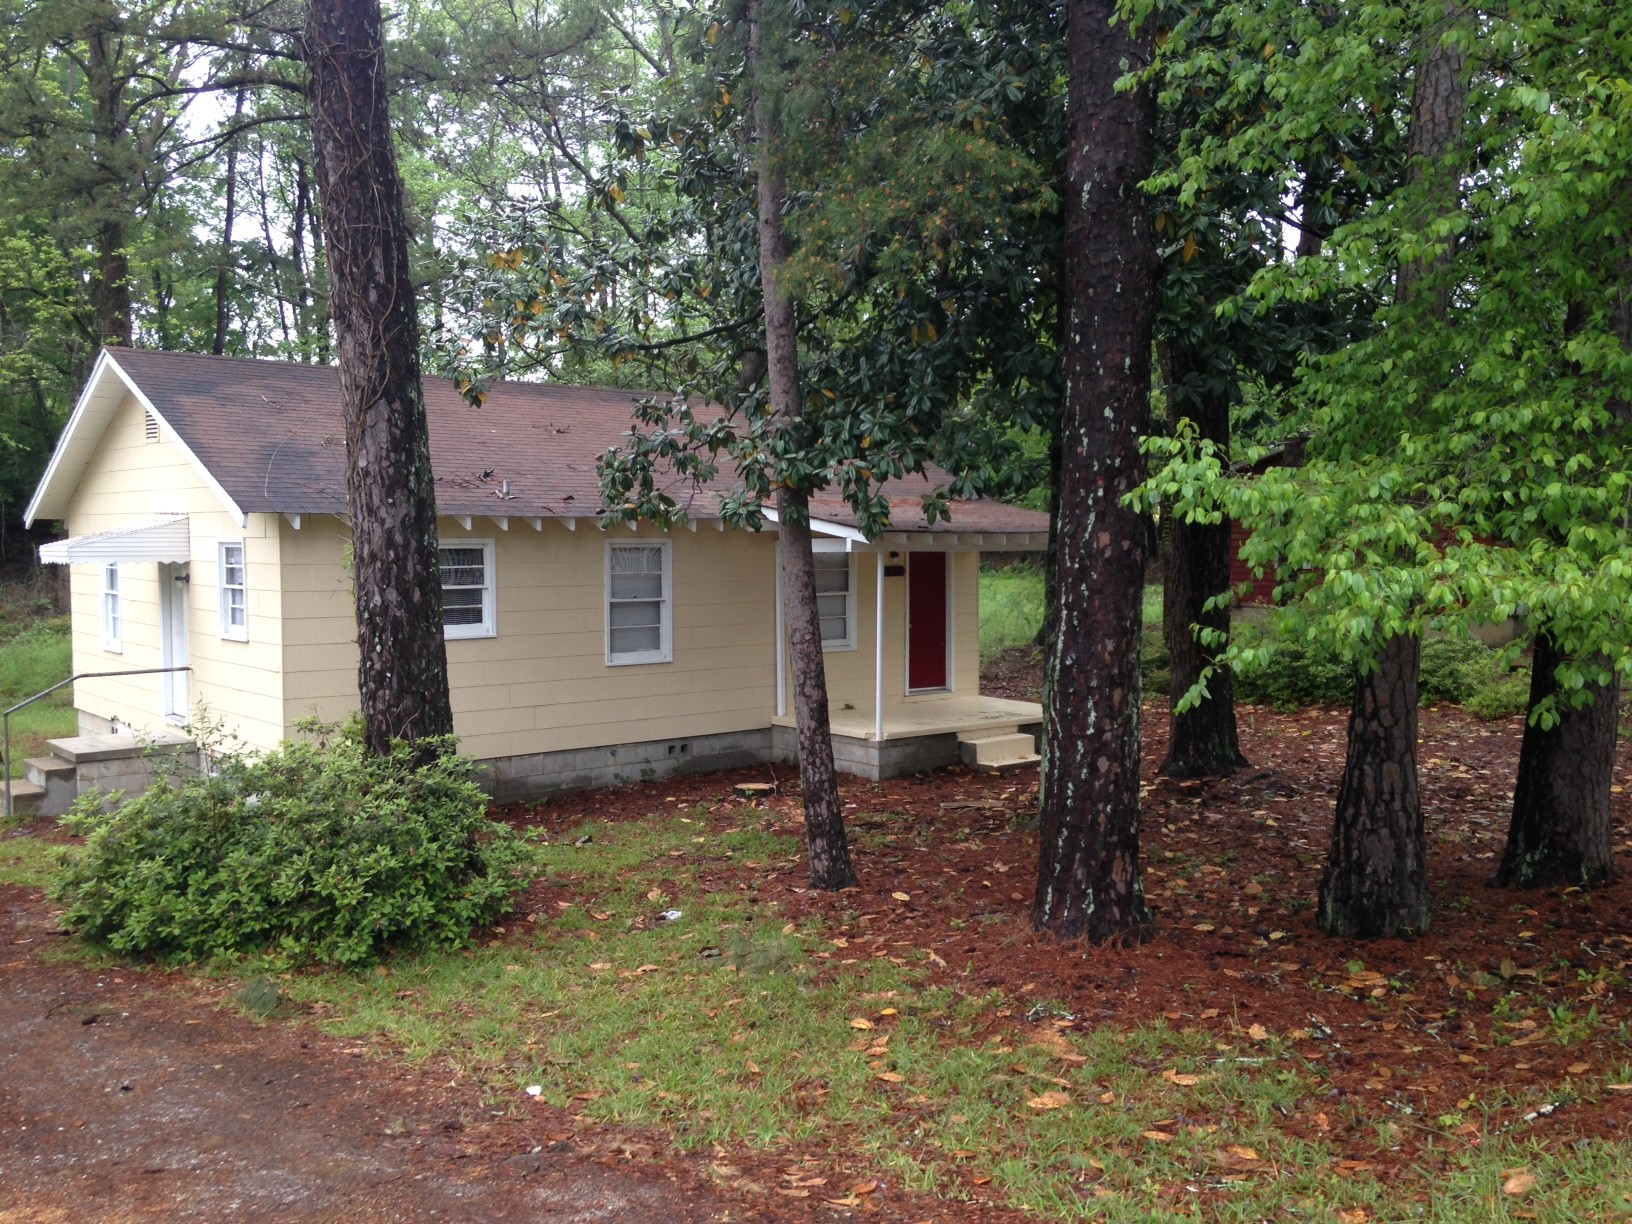 7627 fortson rd columbus ga 31909 2 bedroom apartment for rent for